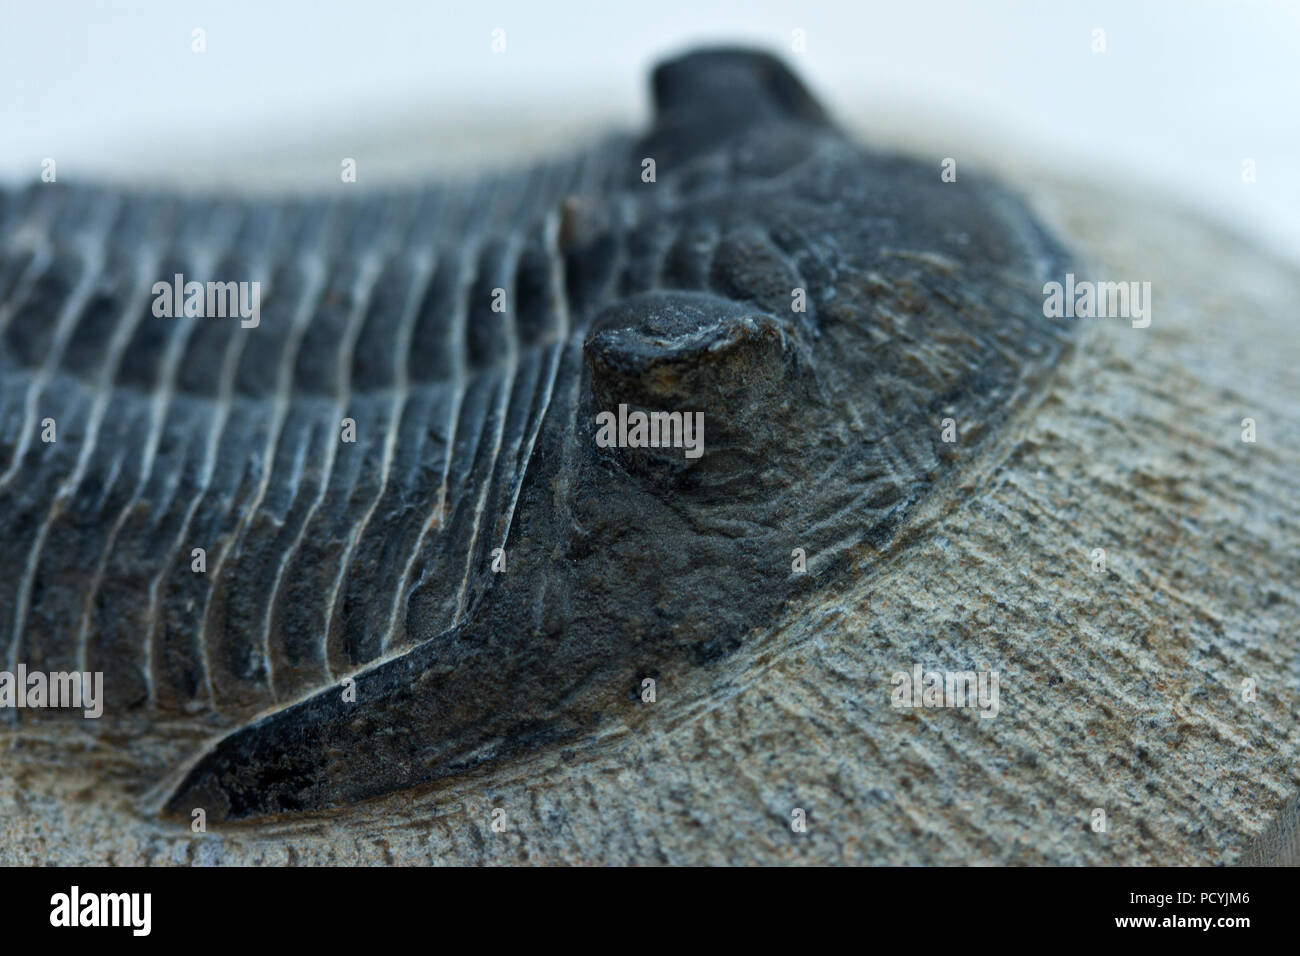 A close-up of the unique compound eyes of an extinct Trilobite. - Stock Image